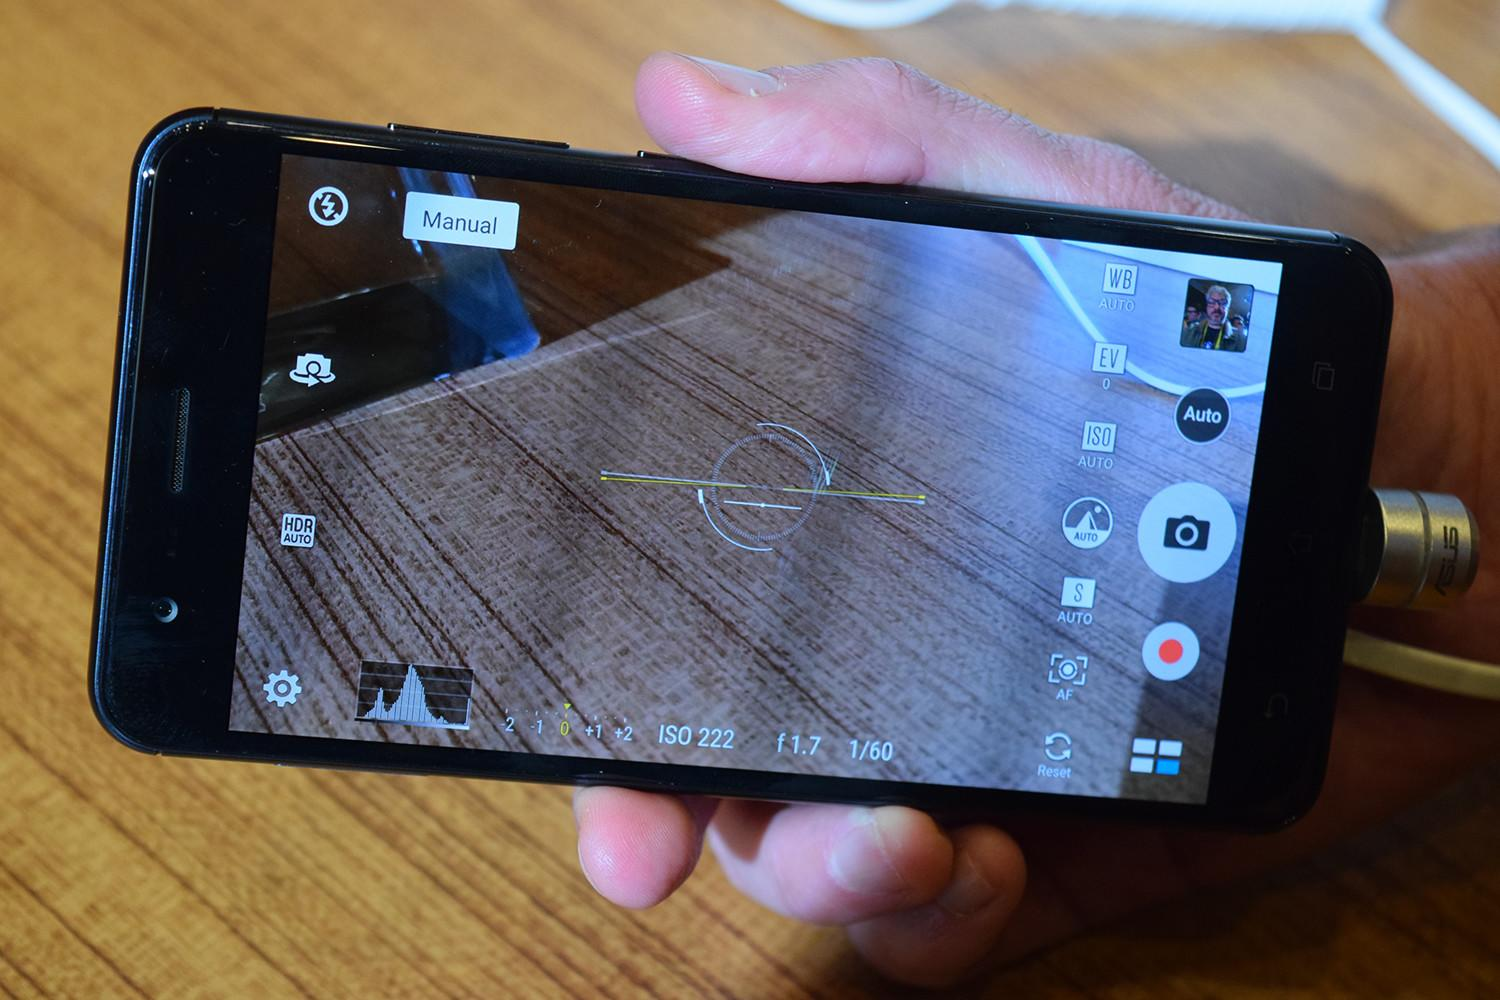 Asus Zenfone 3 Zoom Our First Take